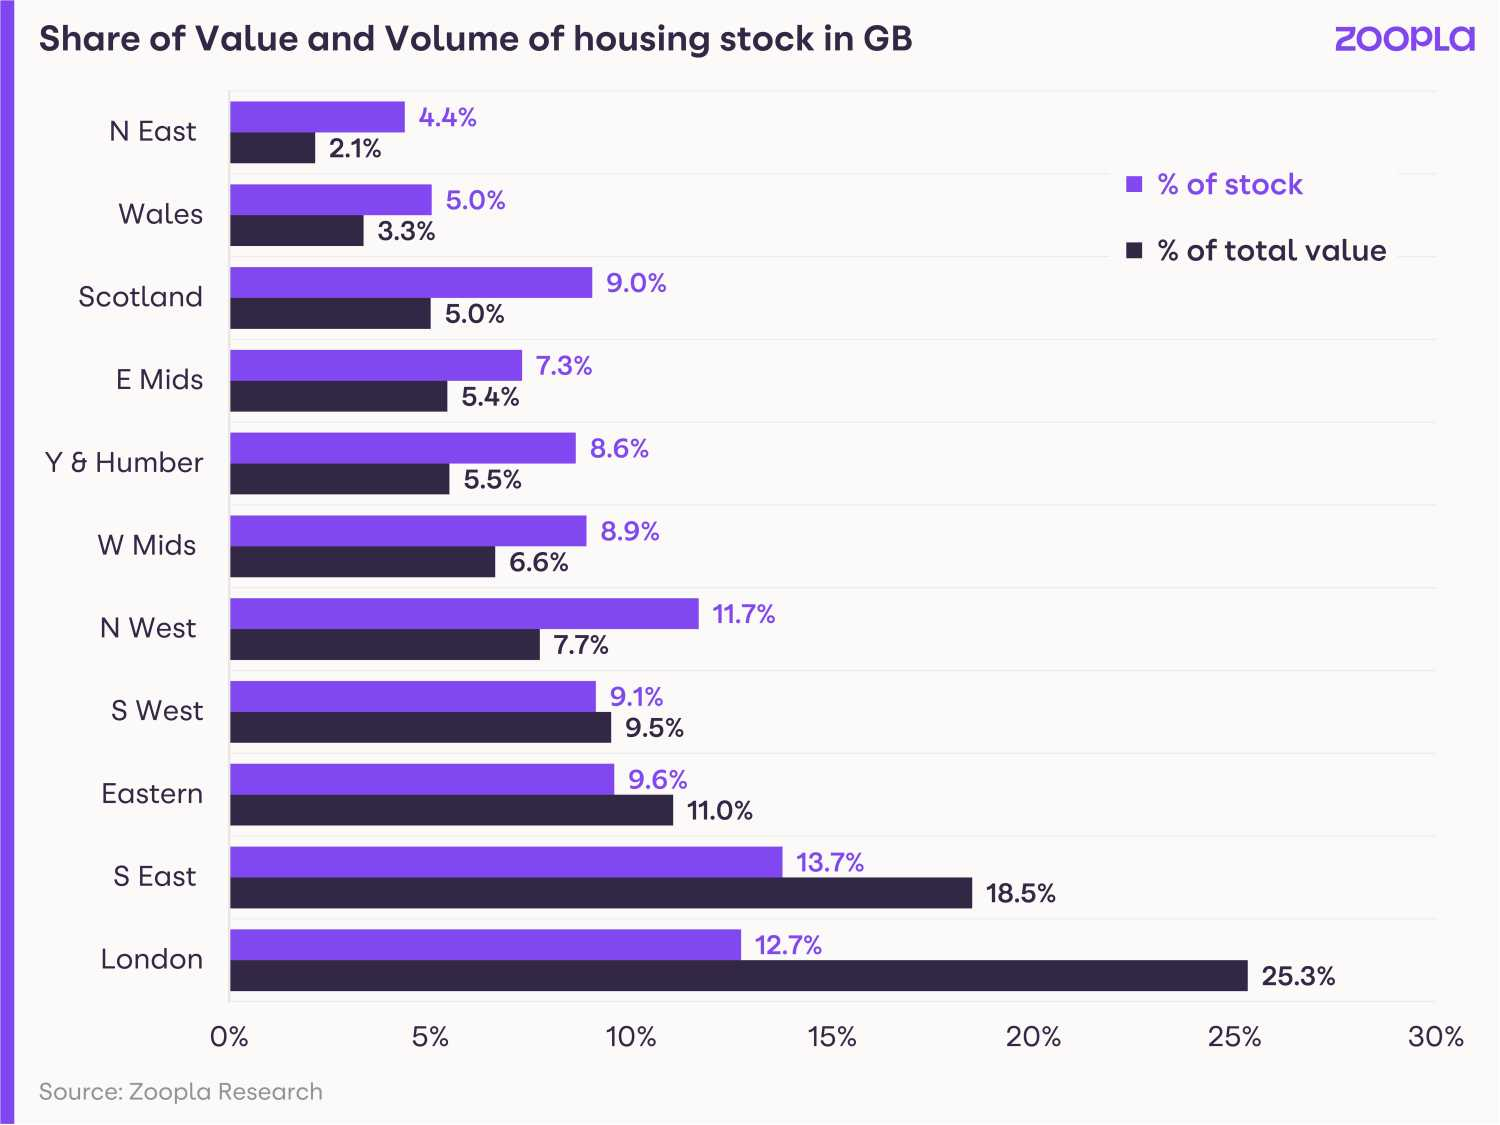 Image shows the share of housing value and volume of homes in different areas.